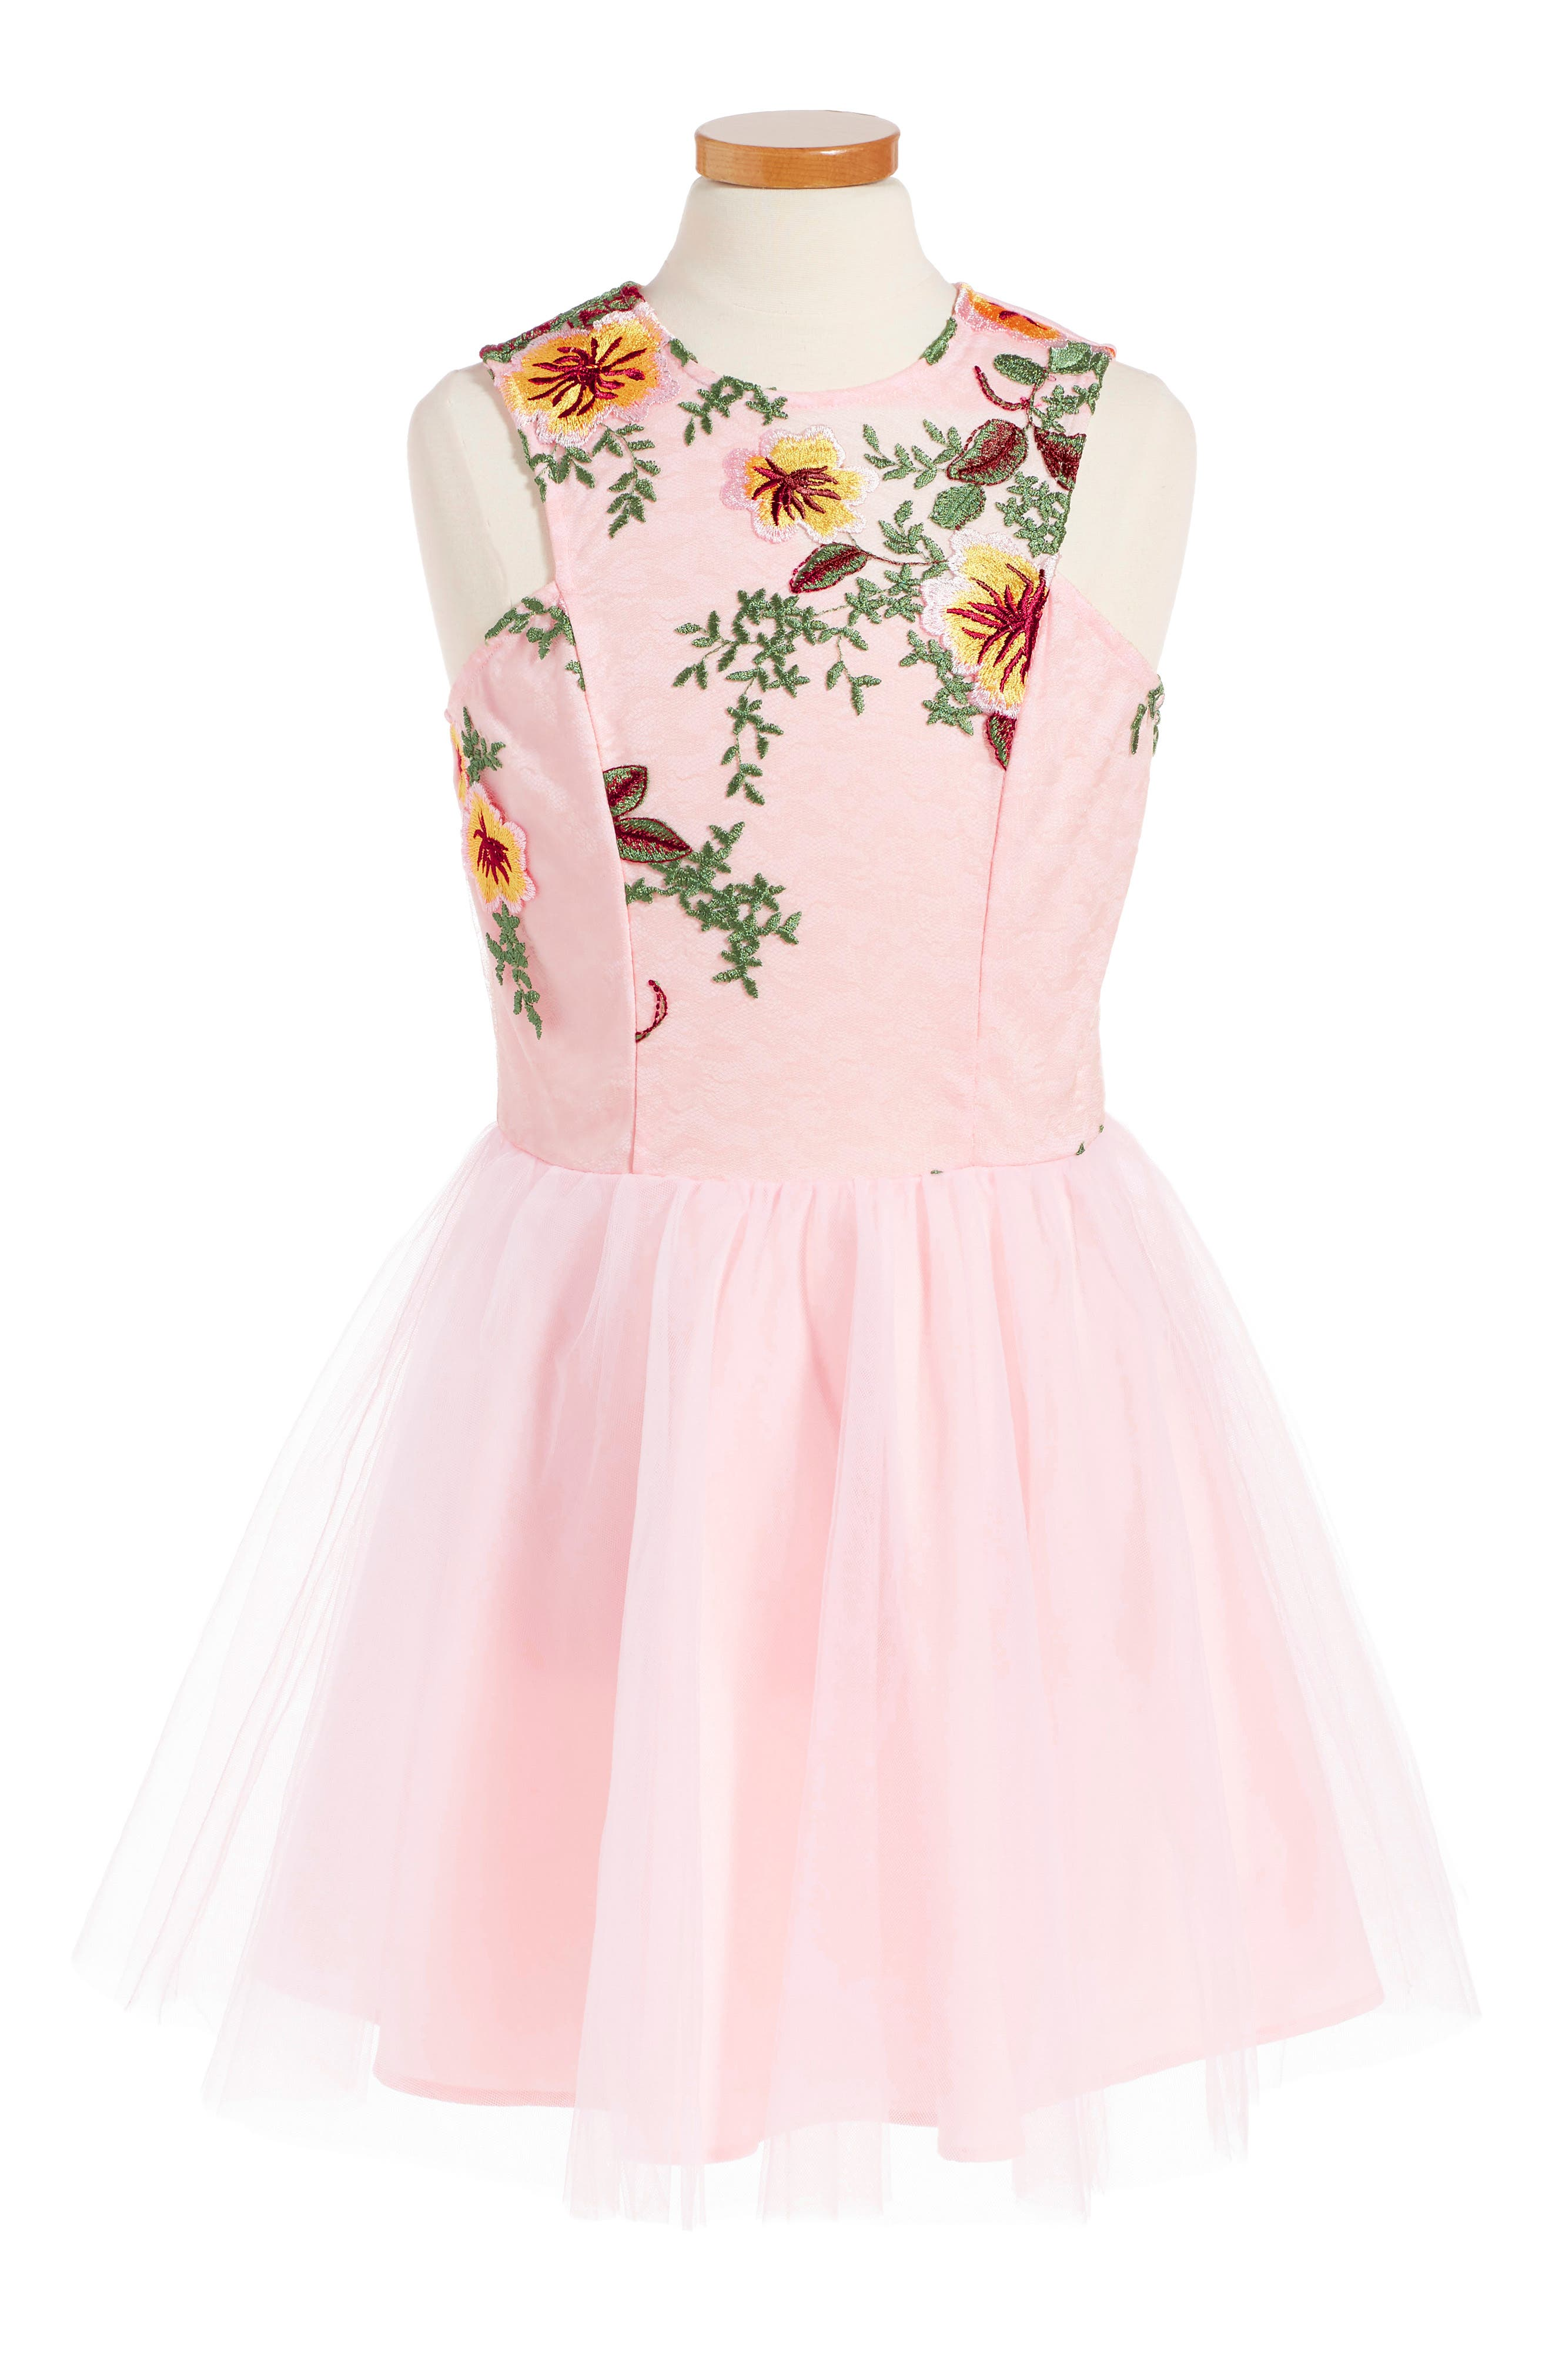 MISS BEHAVE Camilla Embroidered Fit & Flare Dress